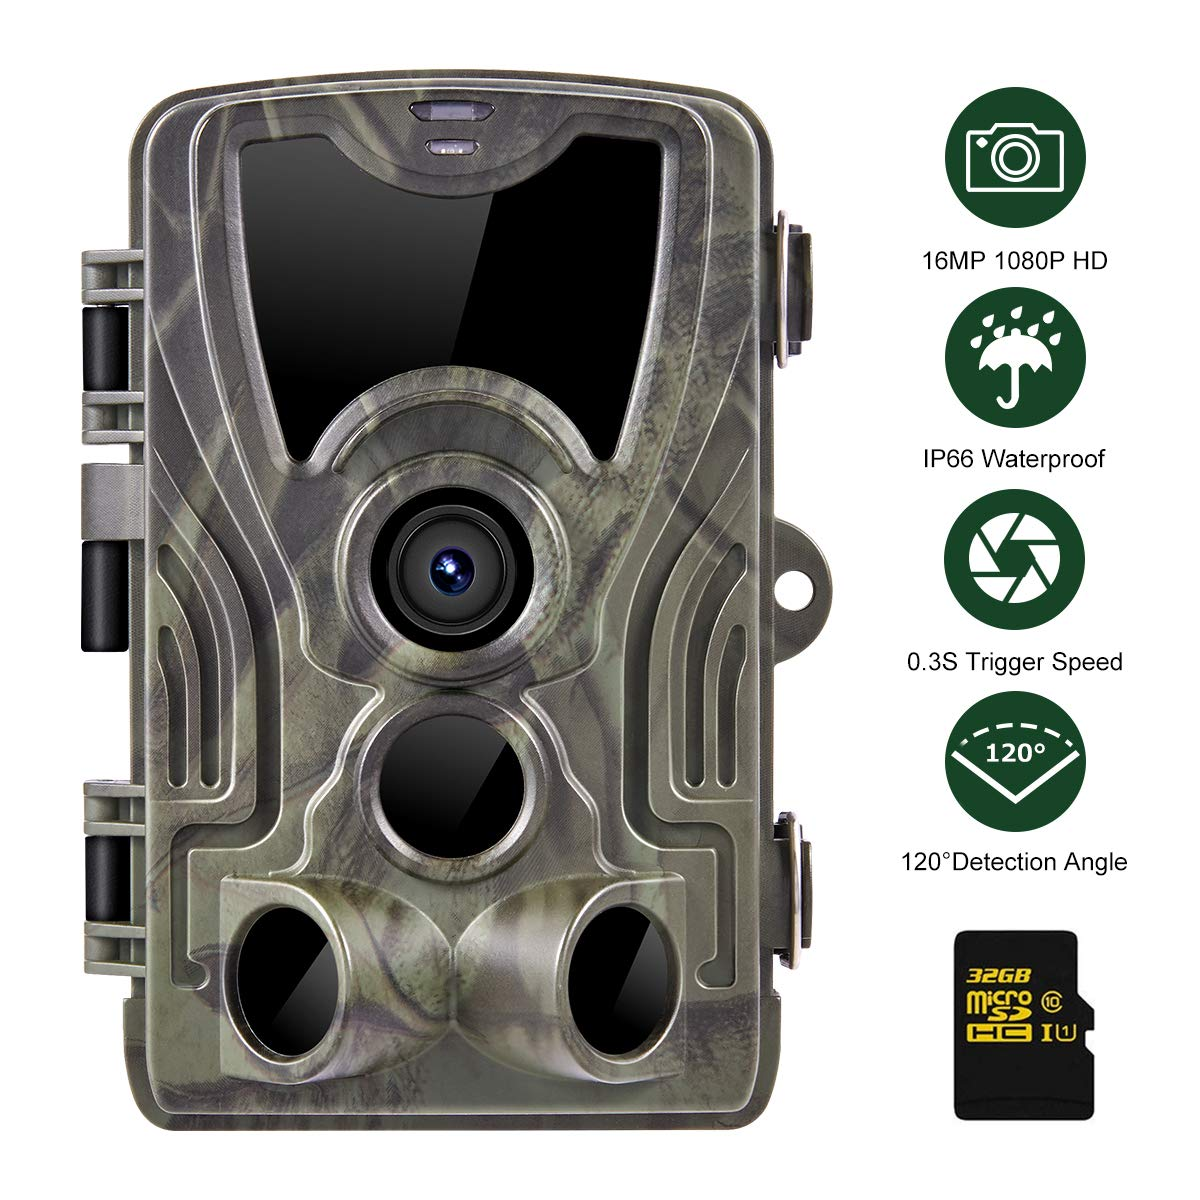 Packfun Trail Camera 16MP 1080P HD Scouting Camera 940nm IR LEDs IP66 Waterproof 120 Detection Range Motion Activated Night Vision Suitable for Wildlife Observation Home Security, 32GB Card Included